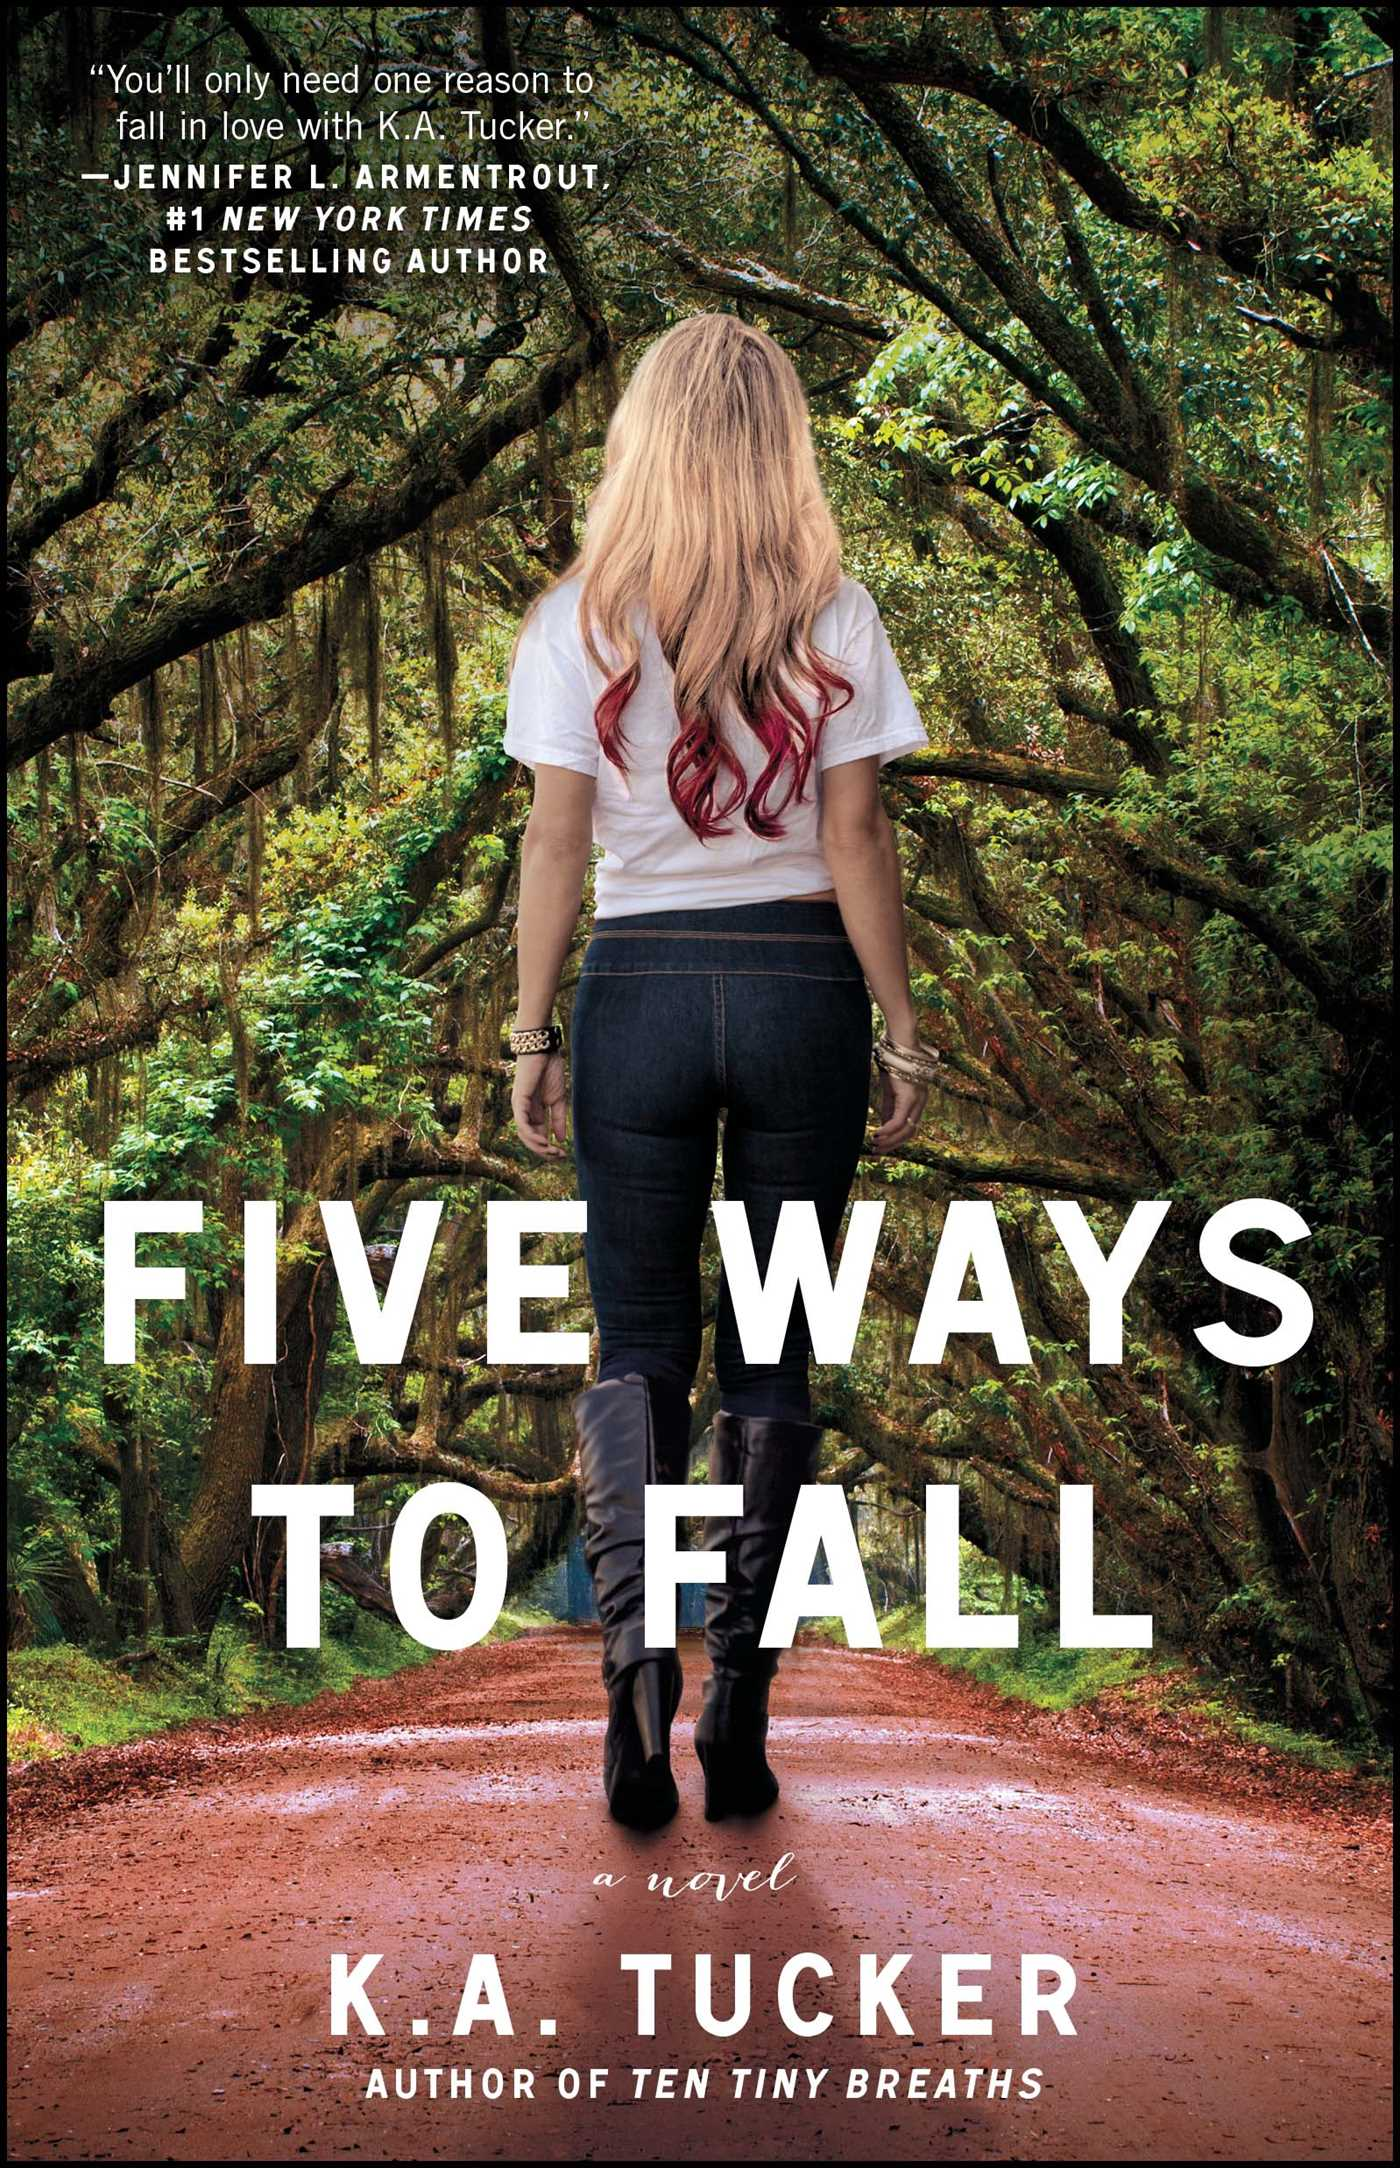 Five-ways-to-fall-9781476740522_hr